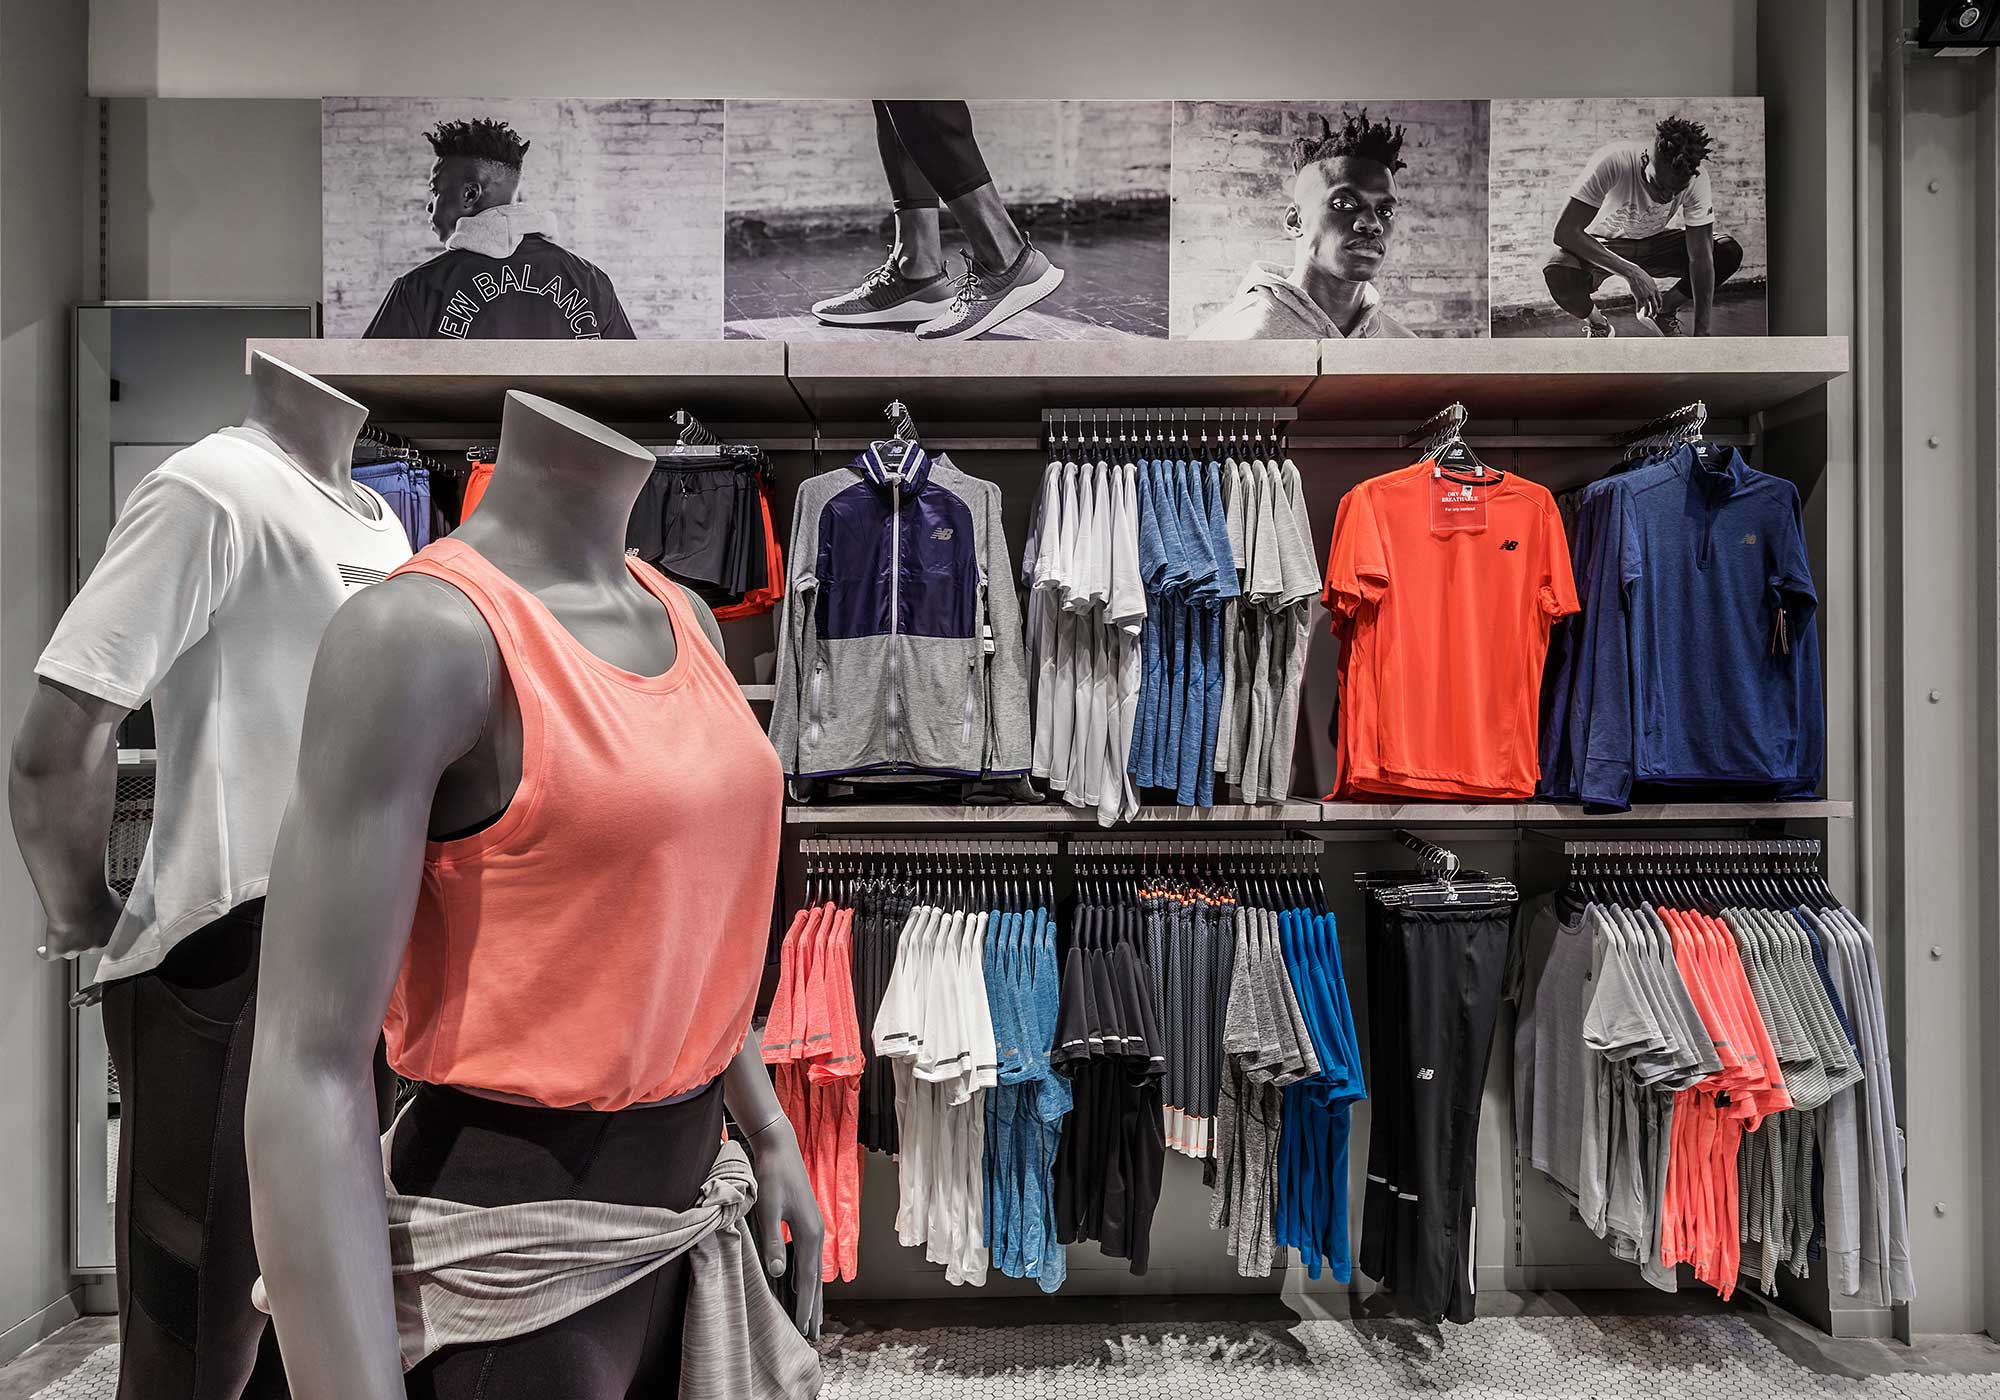 Mannequins in sportswear in front of a clothing display